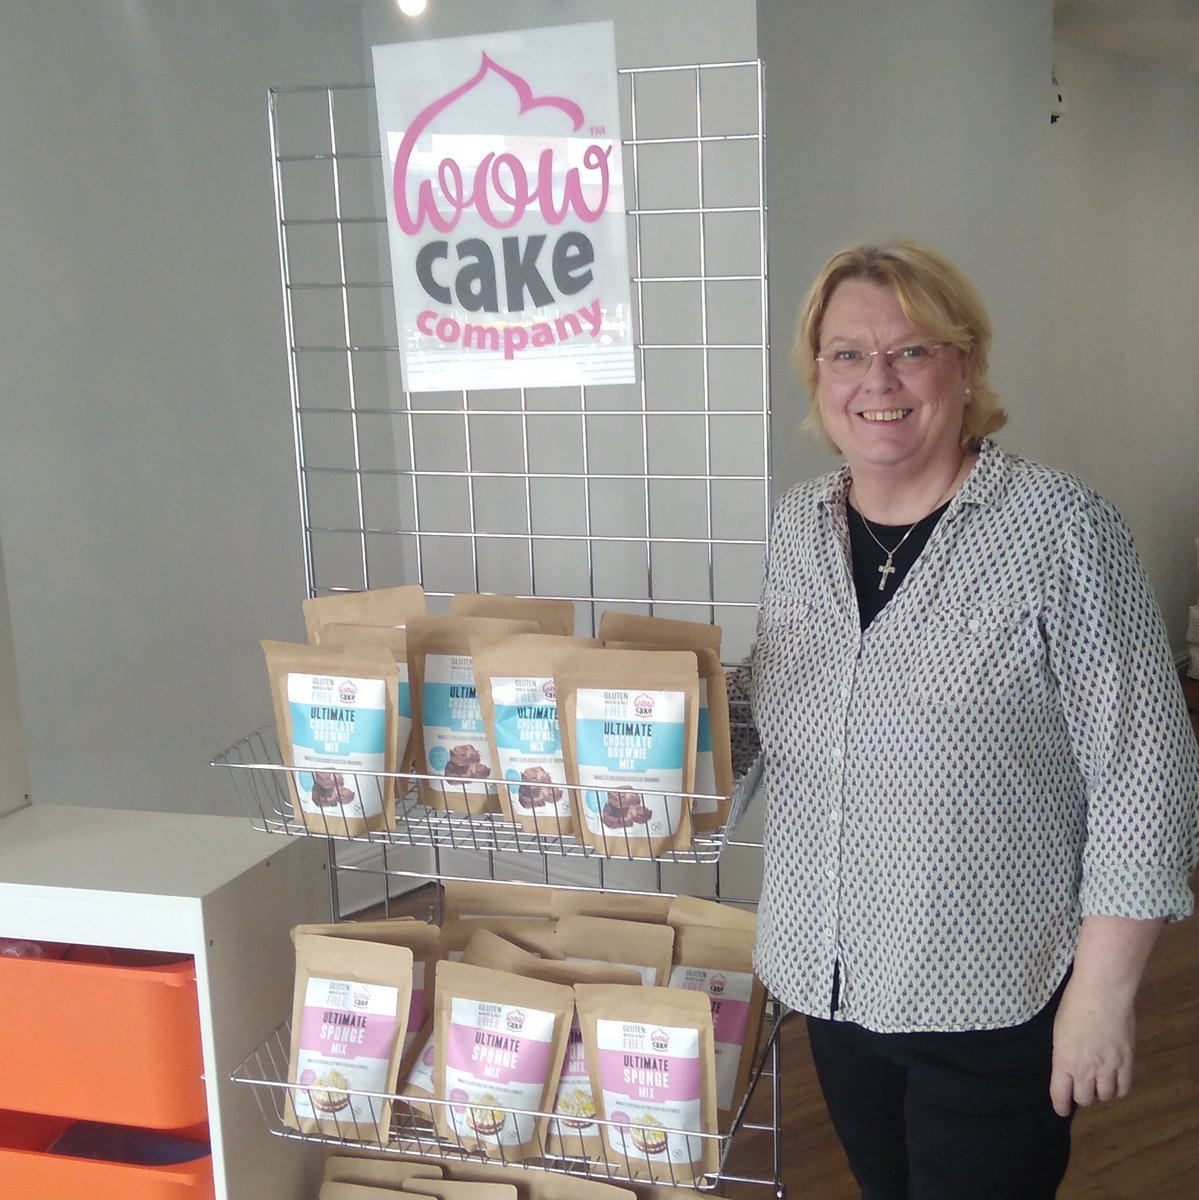 Looking forward to working with @WOWCakeCompany